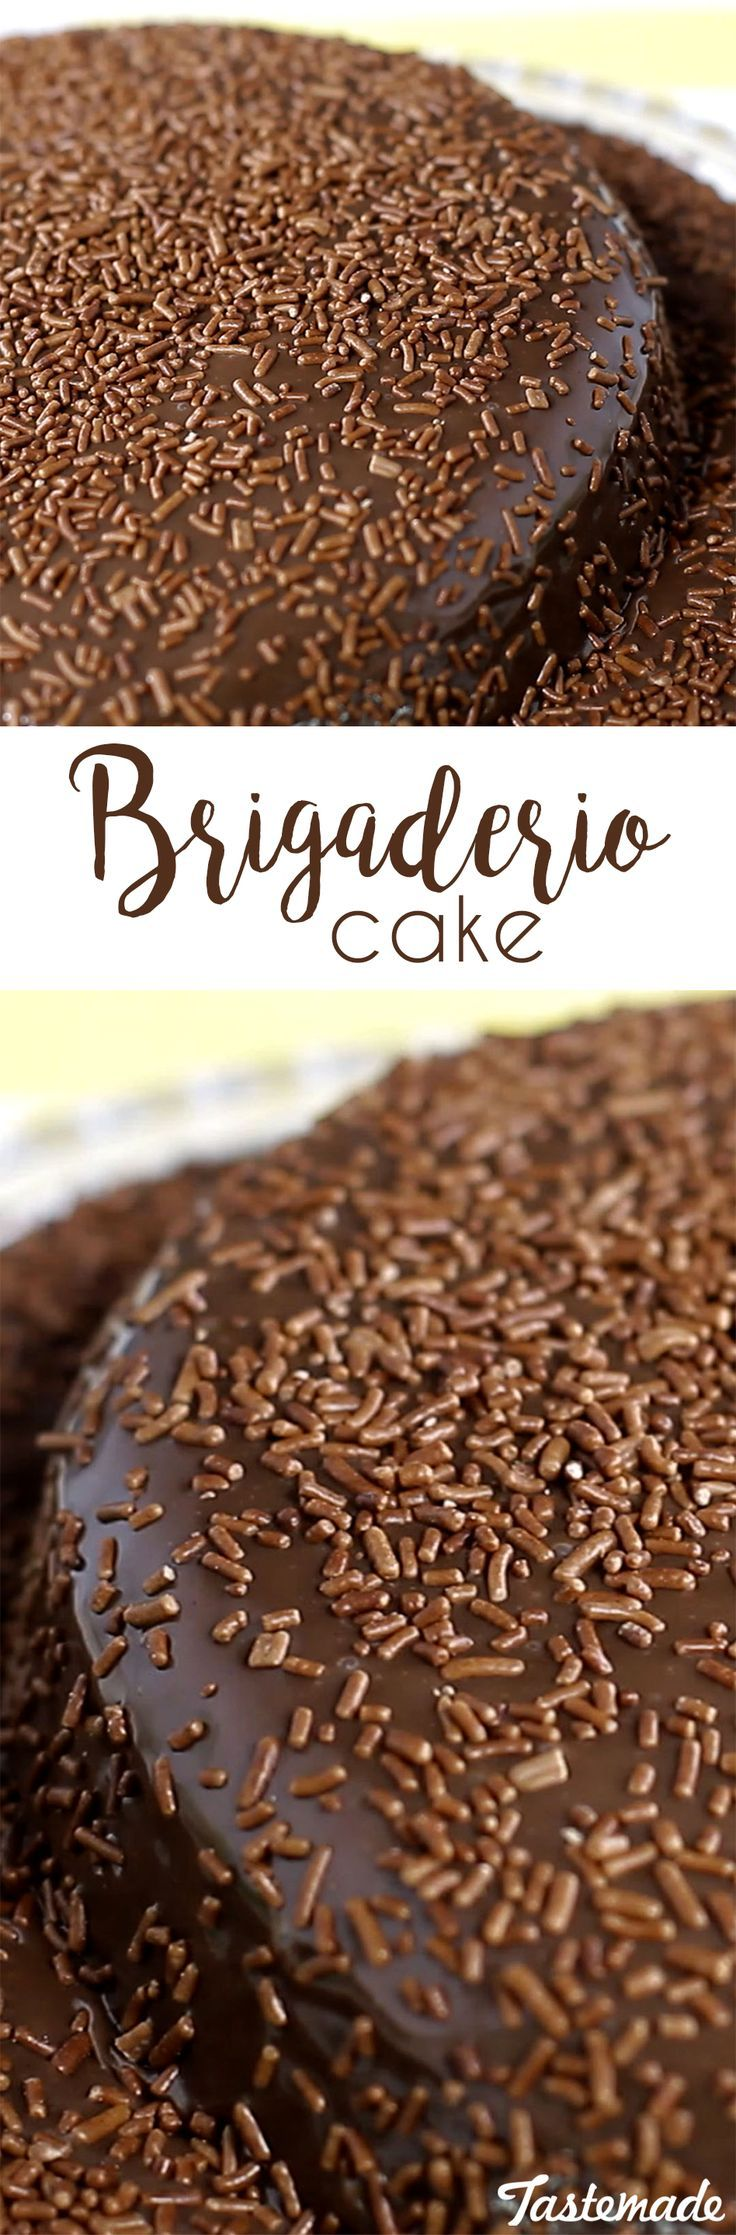 A deliciously rich & sweet cake inspired by Brazil's most beloved dessert: the brigadeiro! Chocolate lovers rejoice!